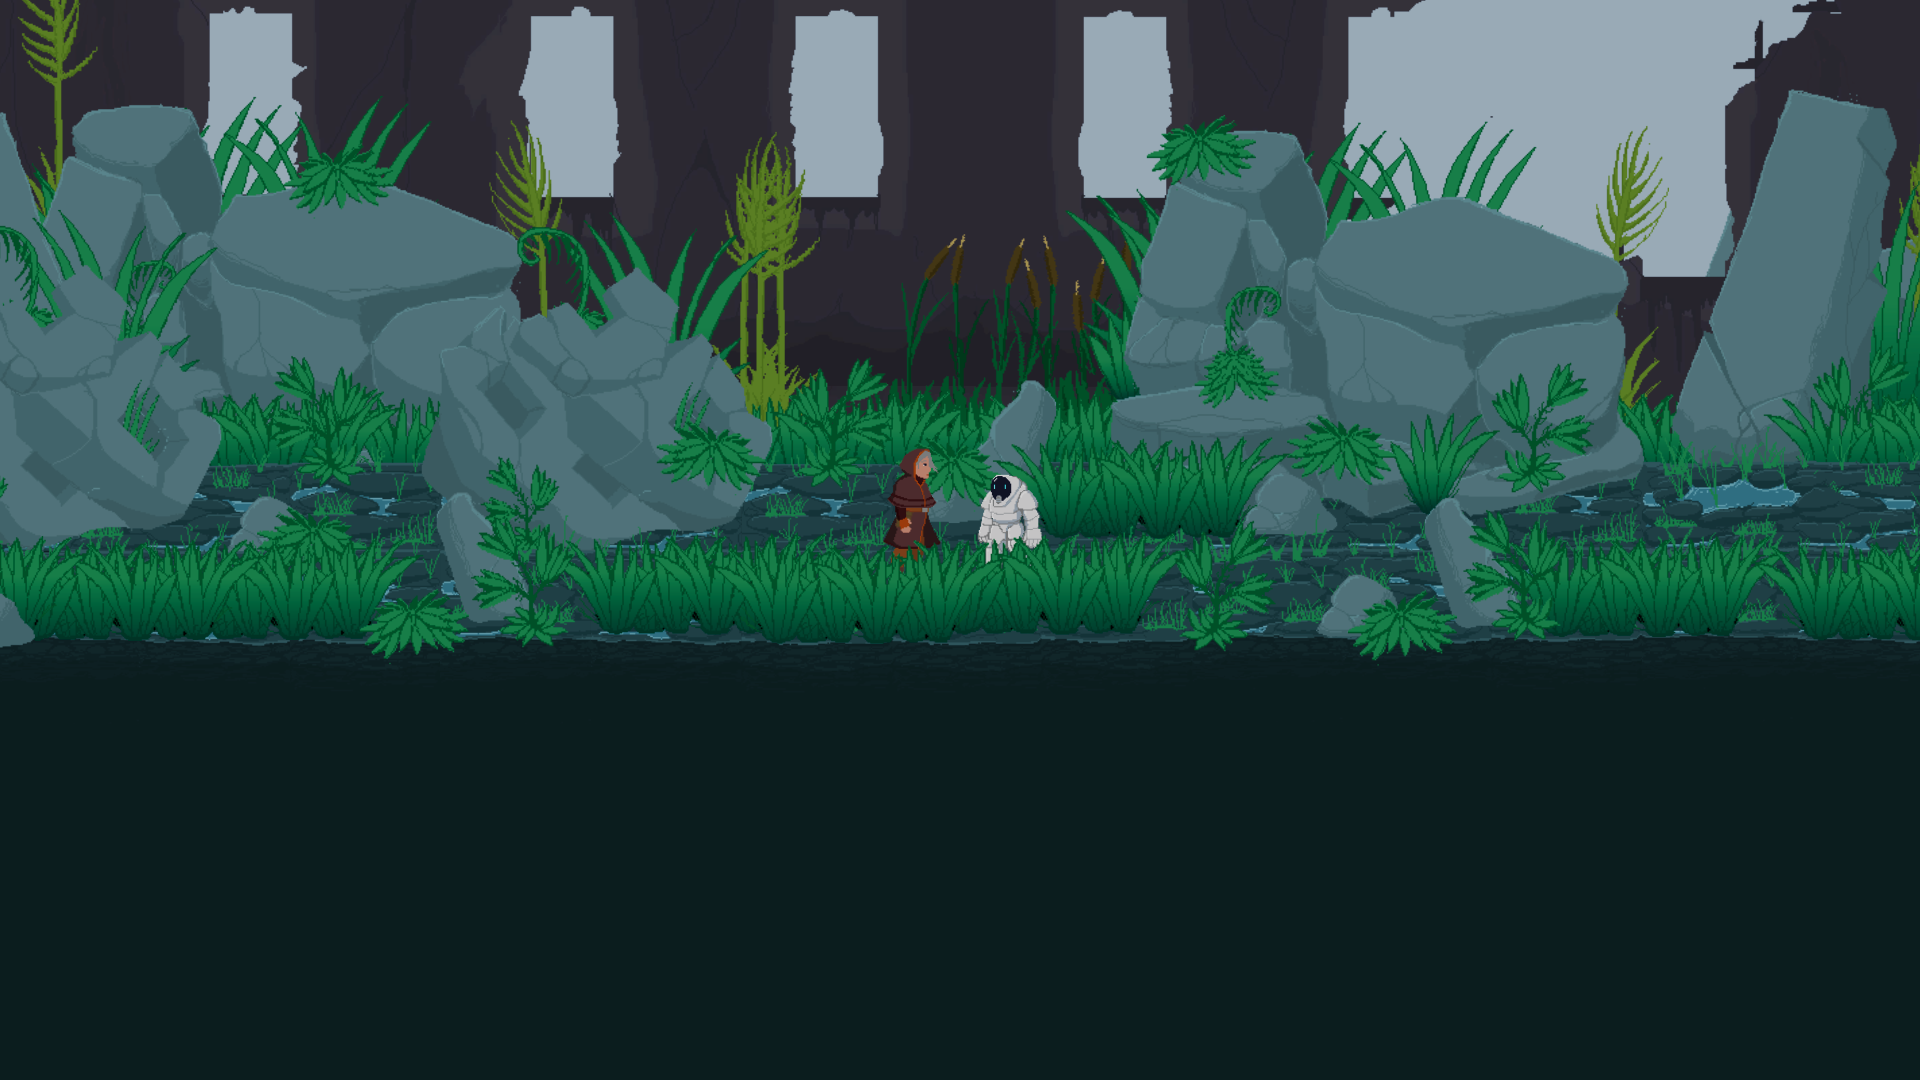 Terra Nova - SlipCyclehttp://terranovagame.com/Experience first contact in the future! Play as both Terra, an Elder landkeeper, and Nova, a youthful inventor, as you guide them through events that will inevitably change their worlds forever.